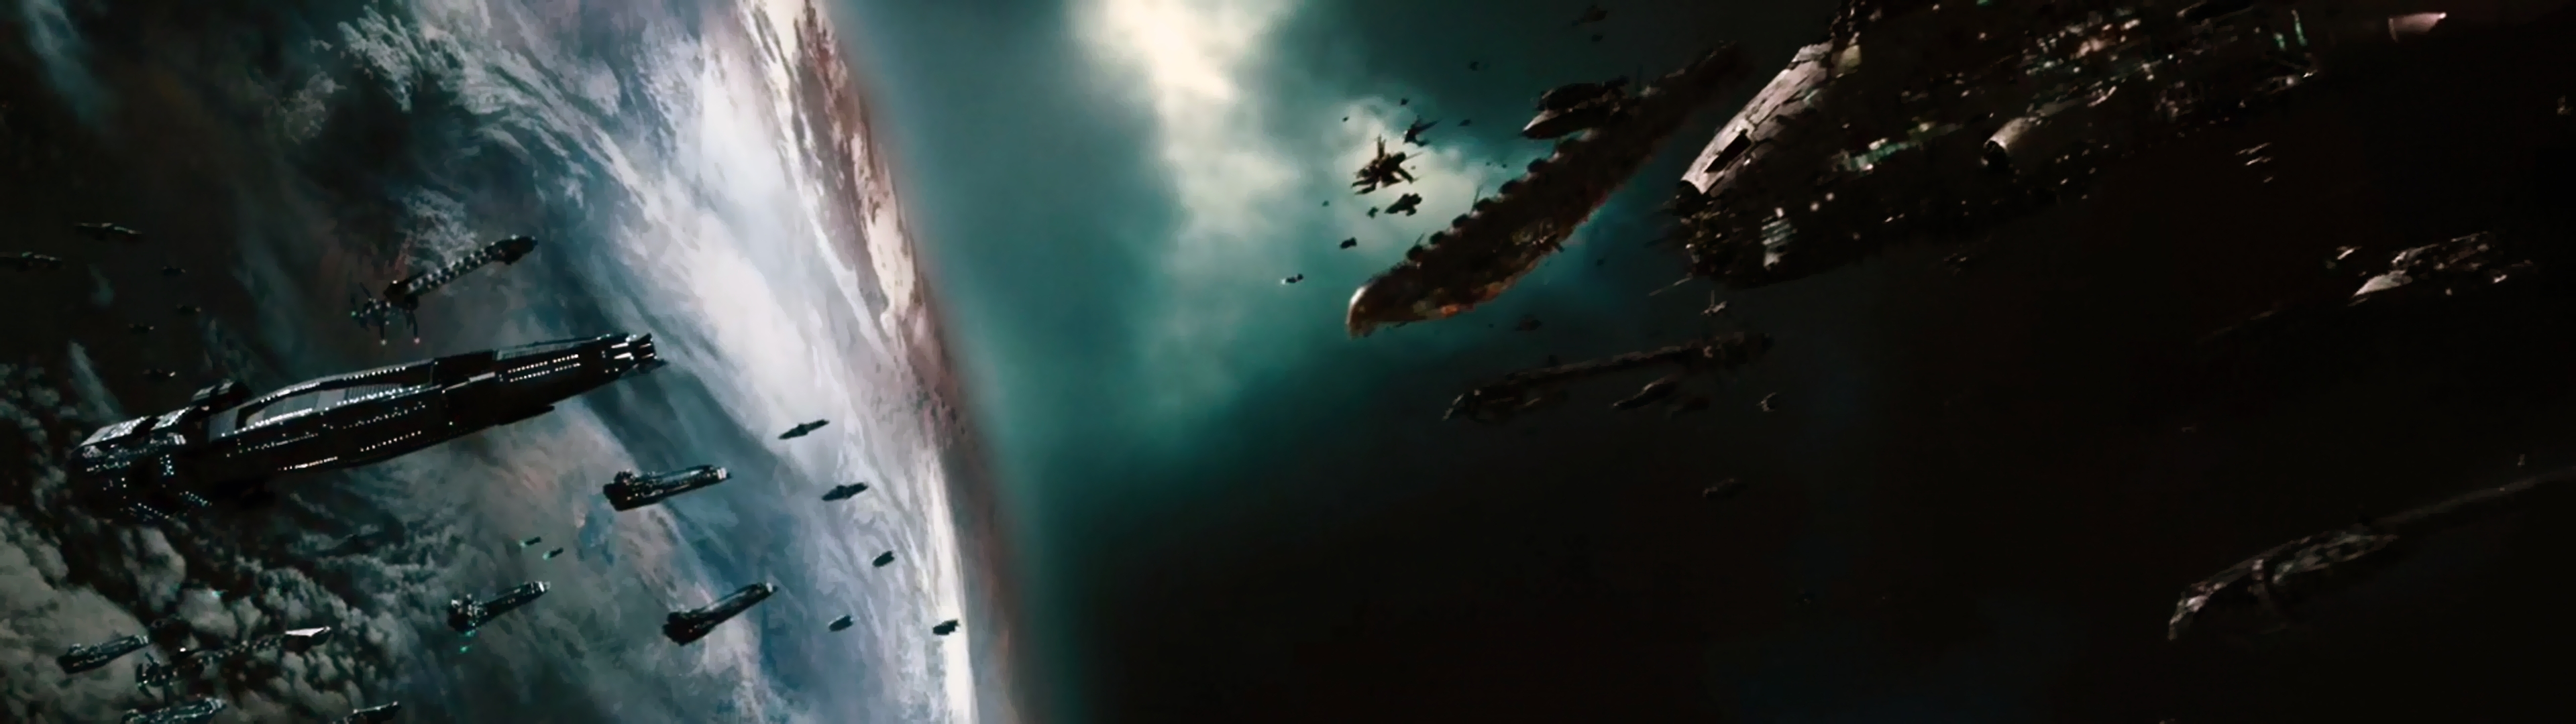 Firefly – serenity_outer_space_spaceships_vehicles_3840x1080_wallpaper_Wallpaper_3840x1080_www.wallpaperswa.com